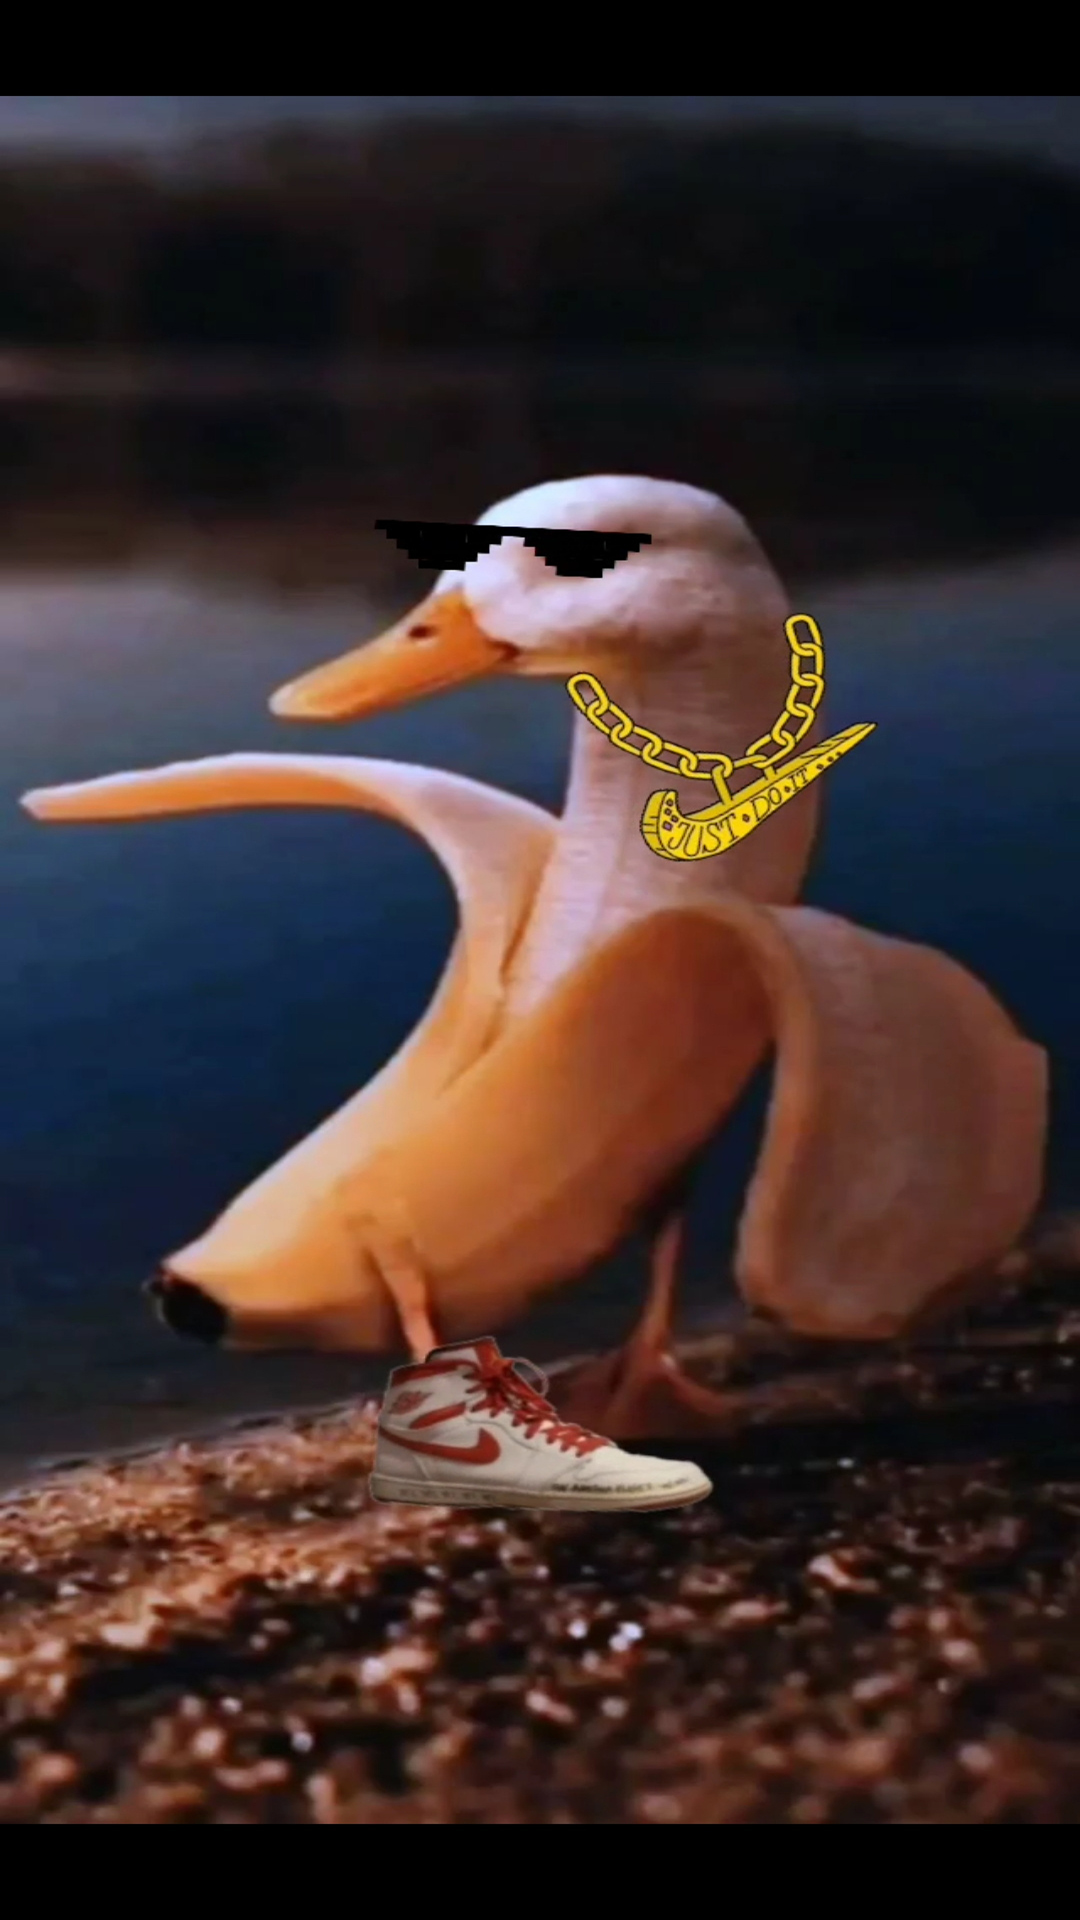 Banna Duck Memes Wallpapers Free Download